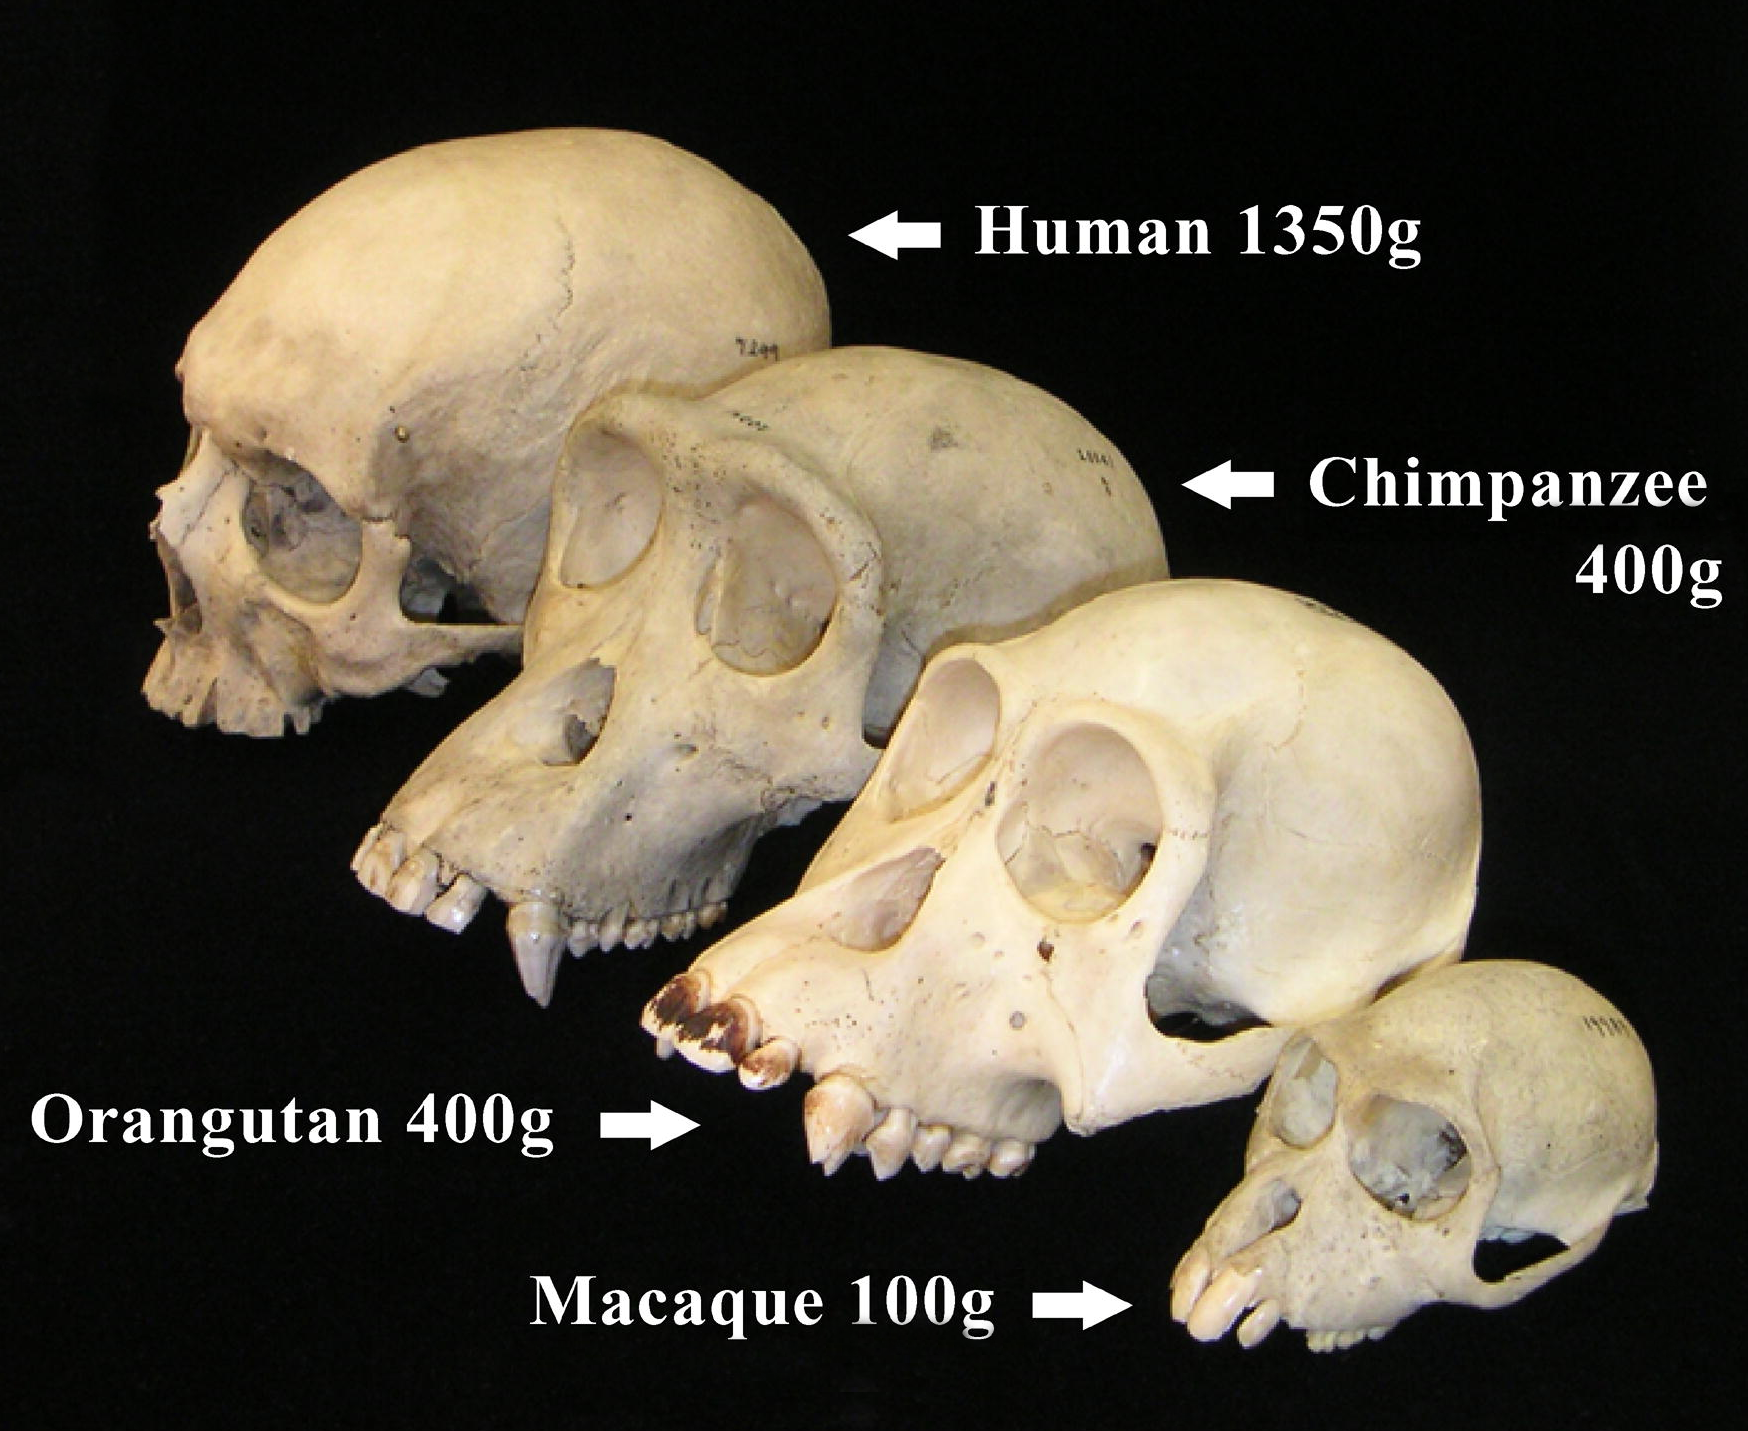 A few primate skulls with brain masses indicated